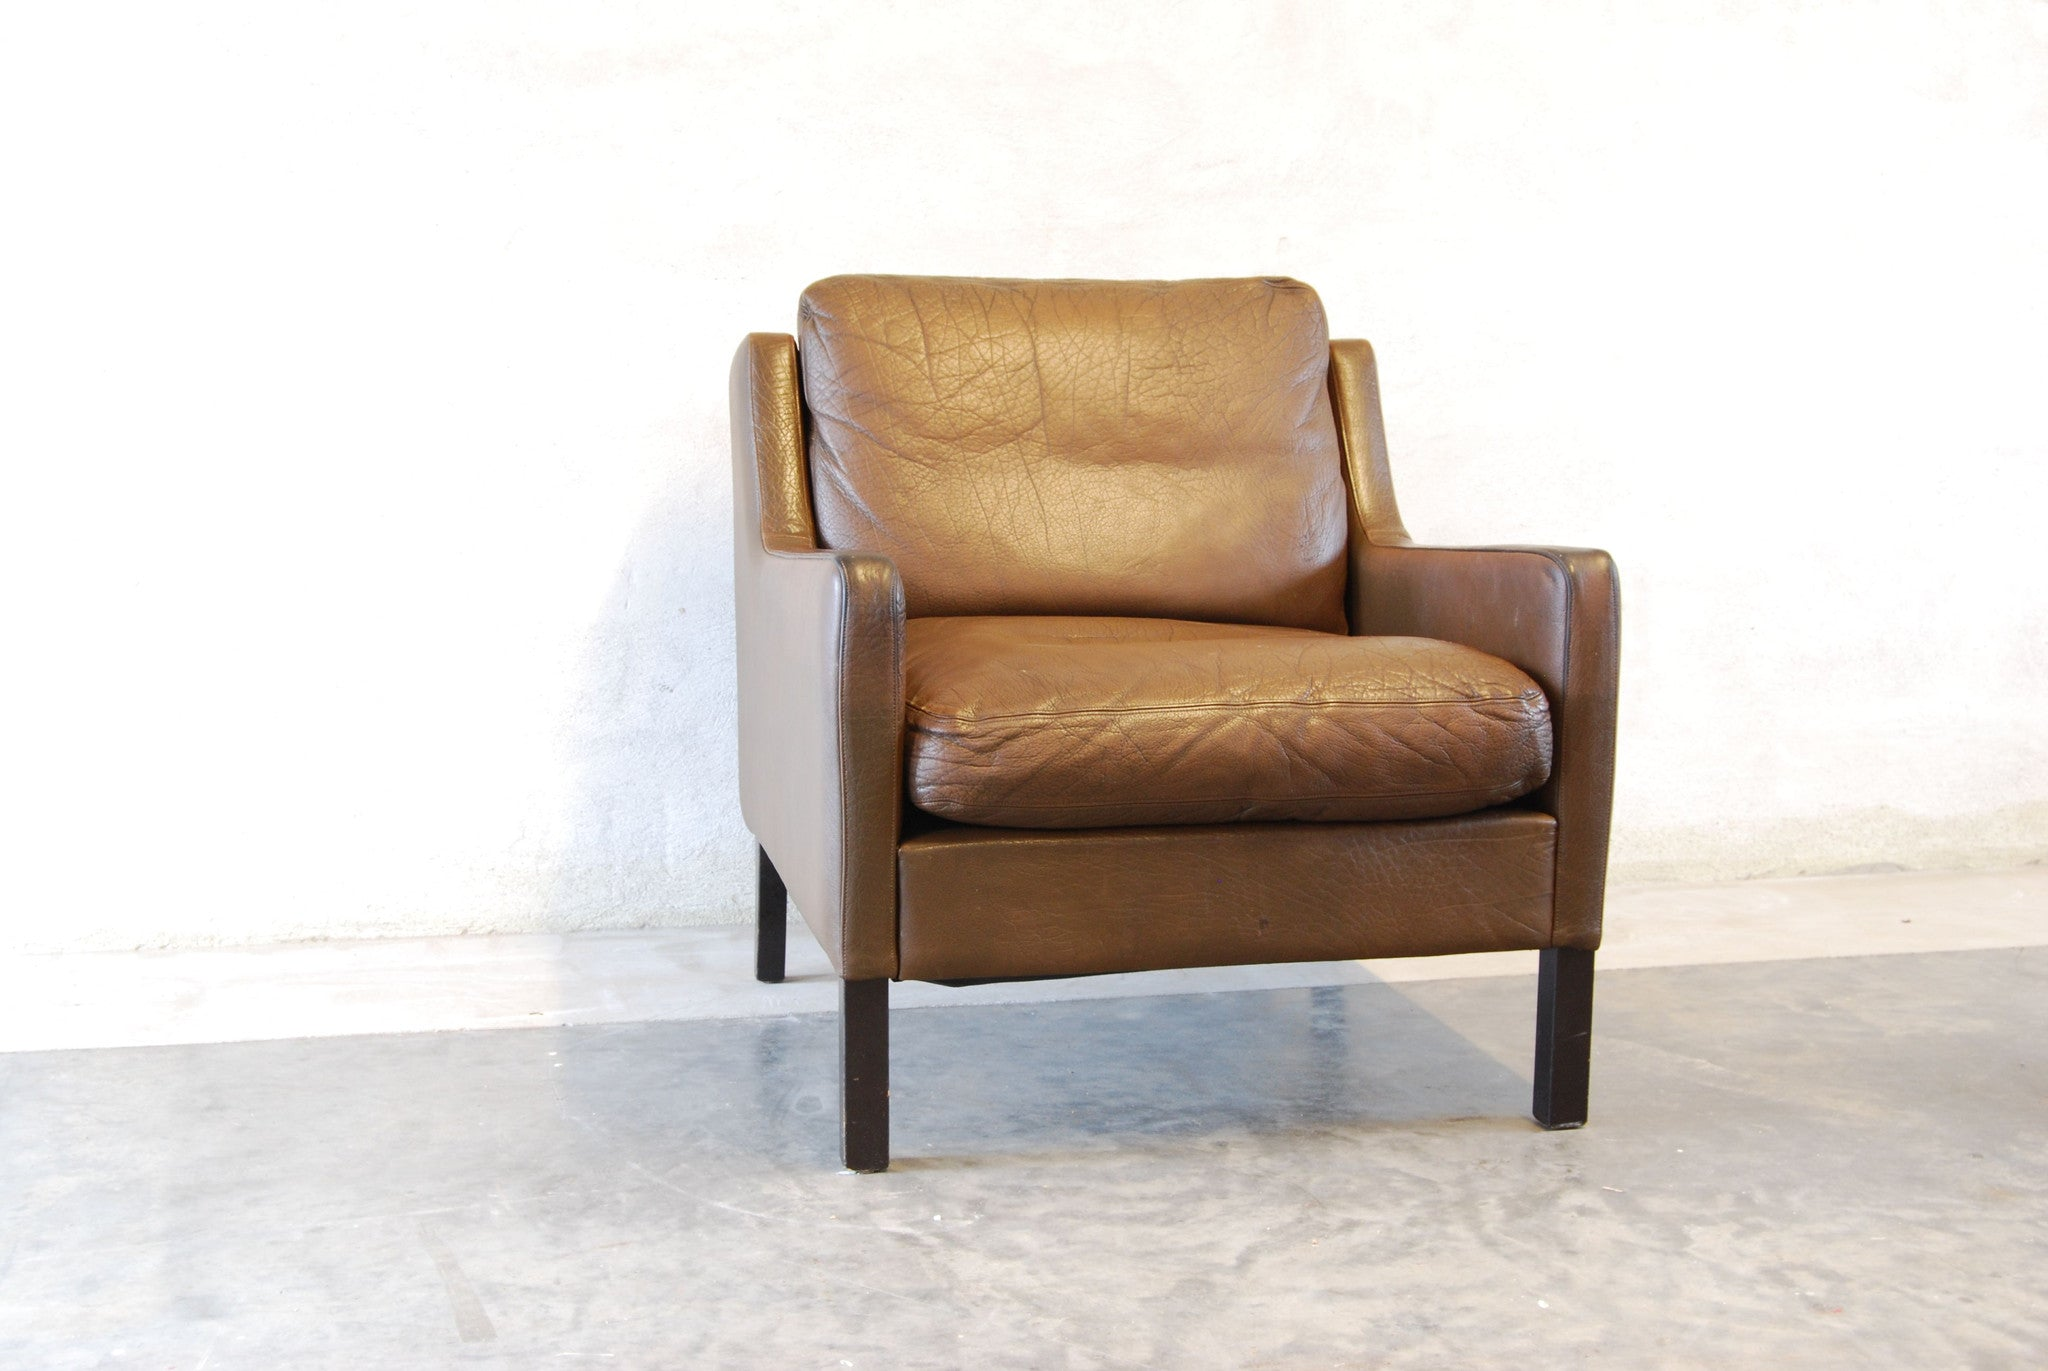 Lounge chair in buffalo leather